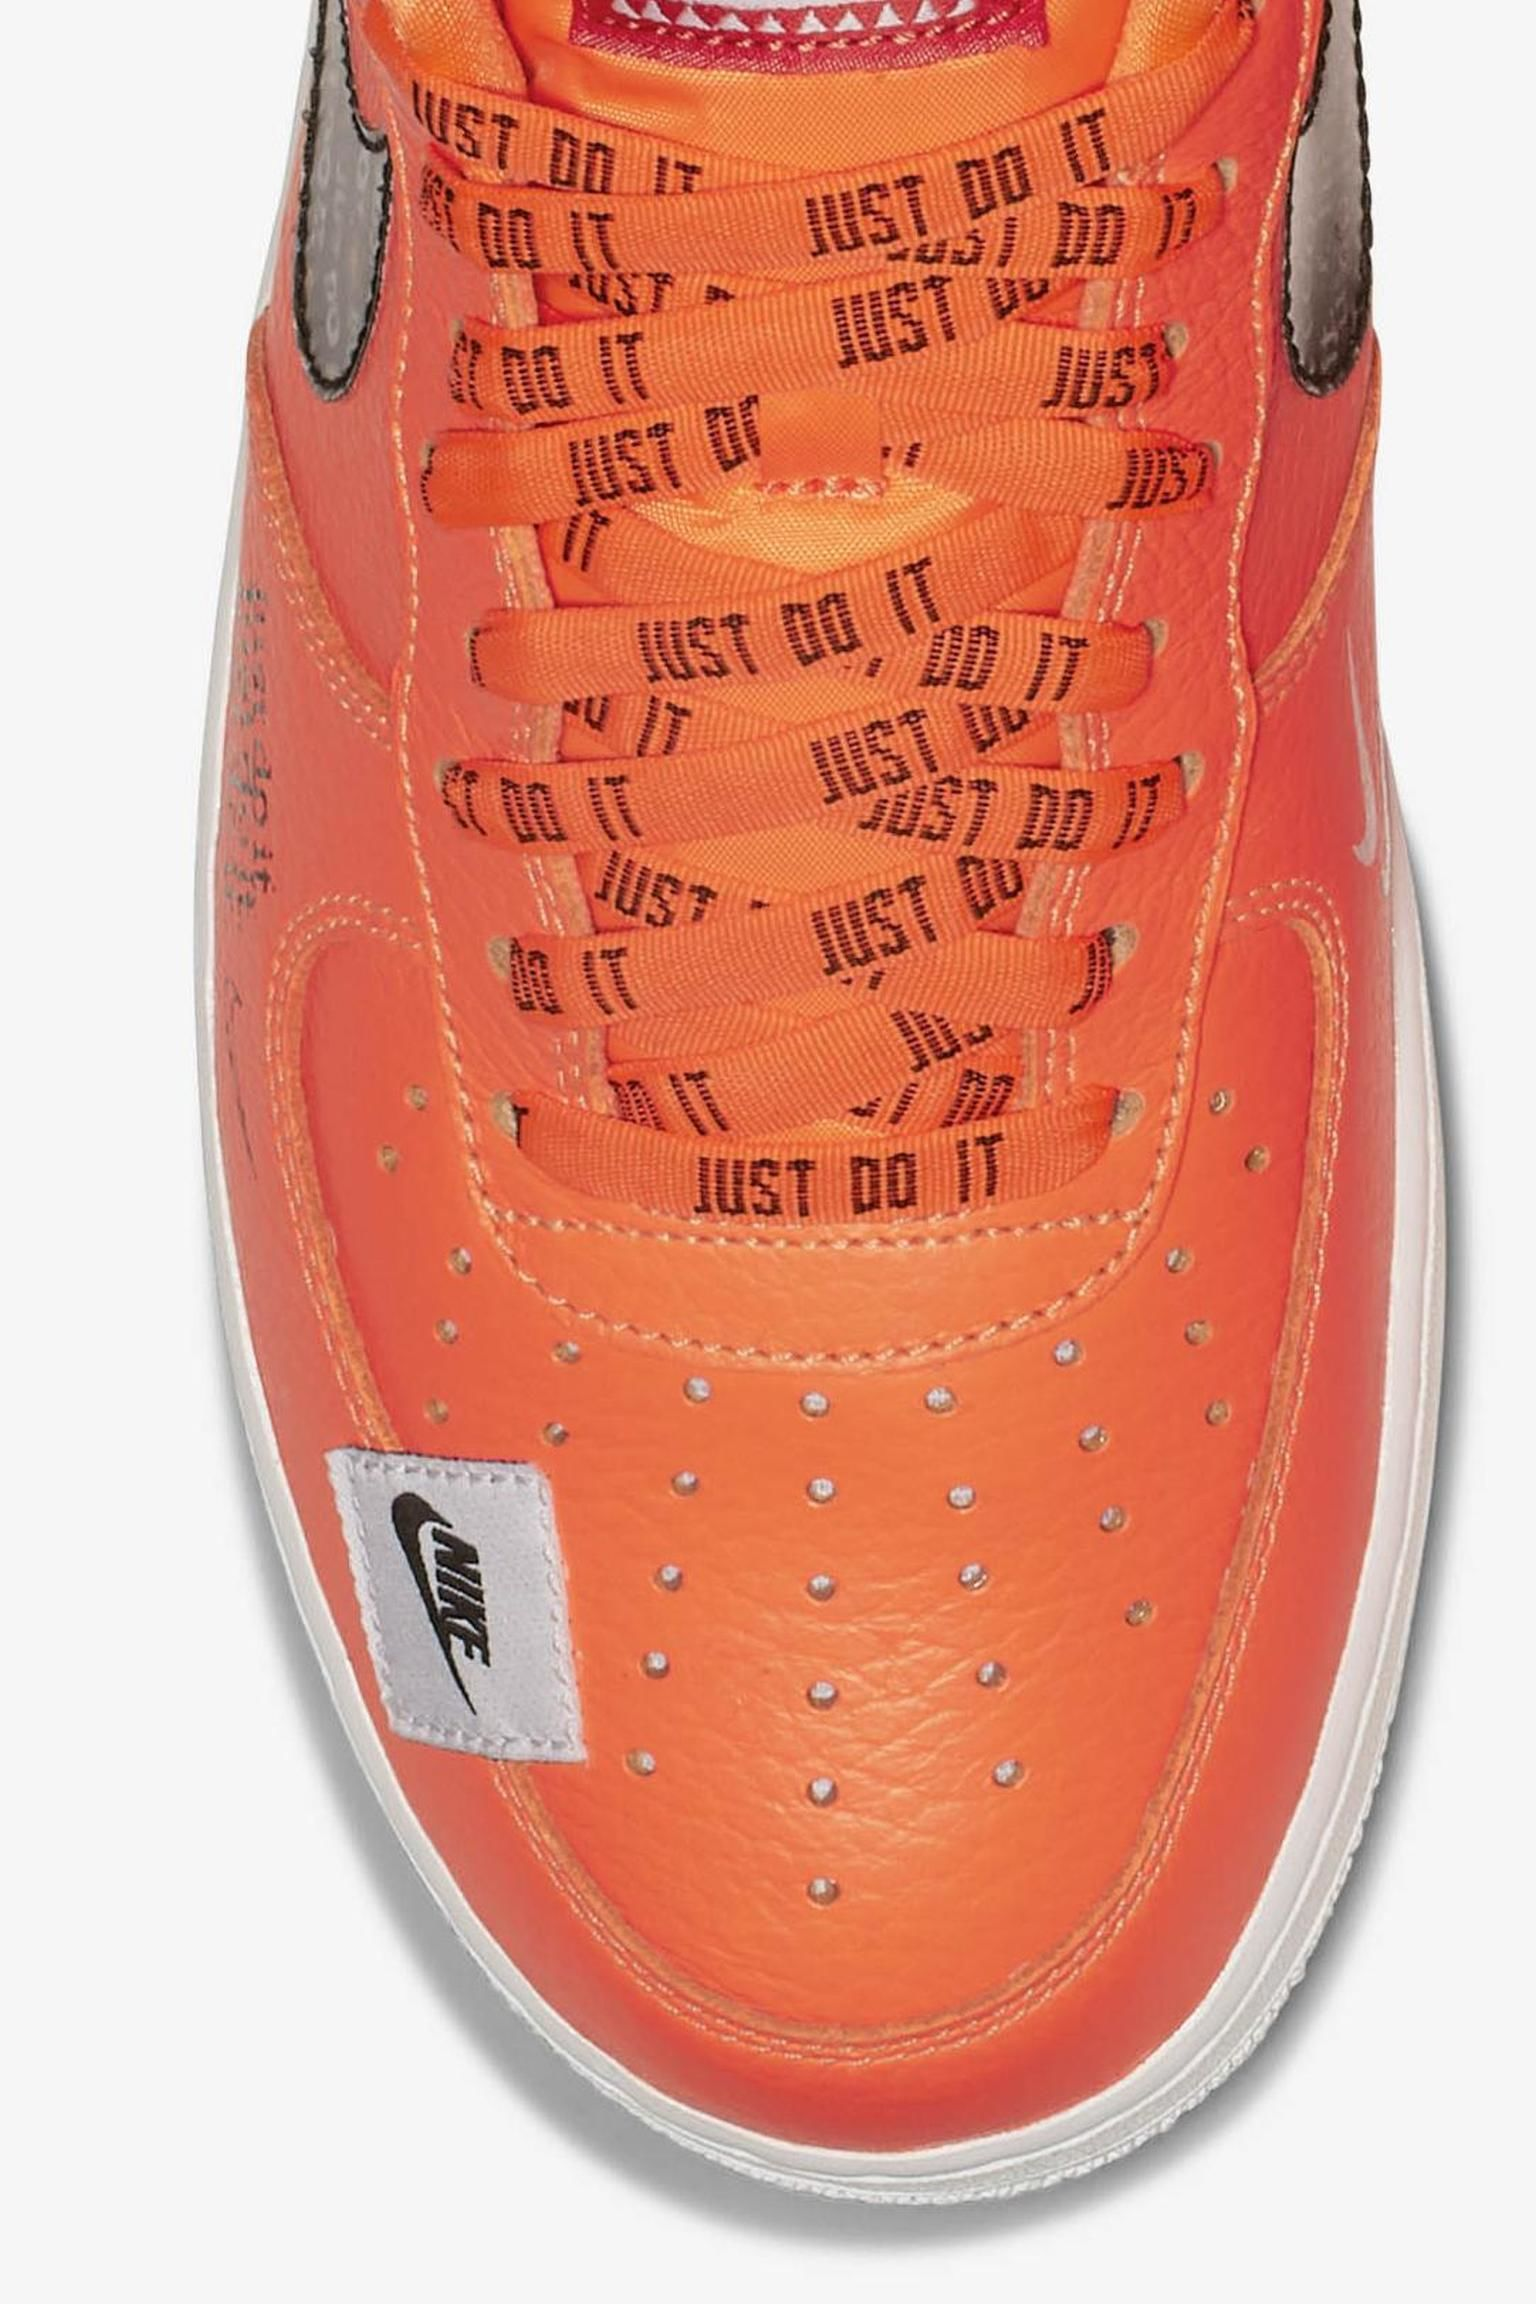 Nike Air Force 1 Premium Just Do It Collection  Total Orange ... 49f384ec8e23